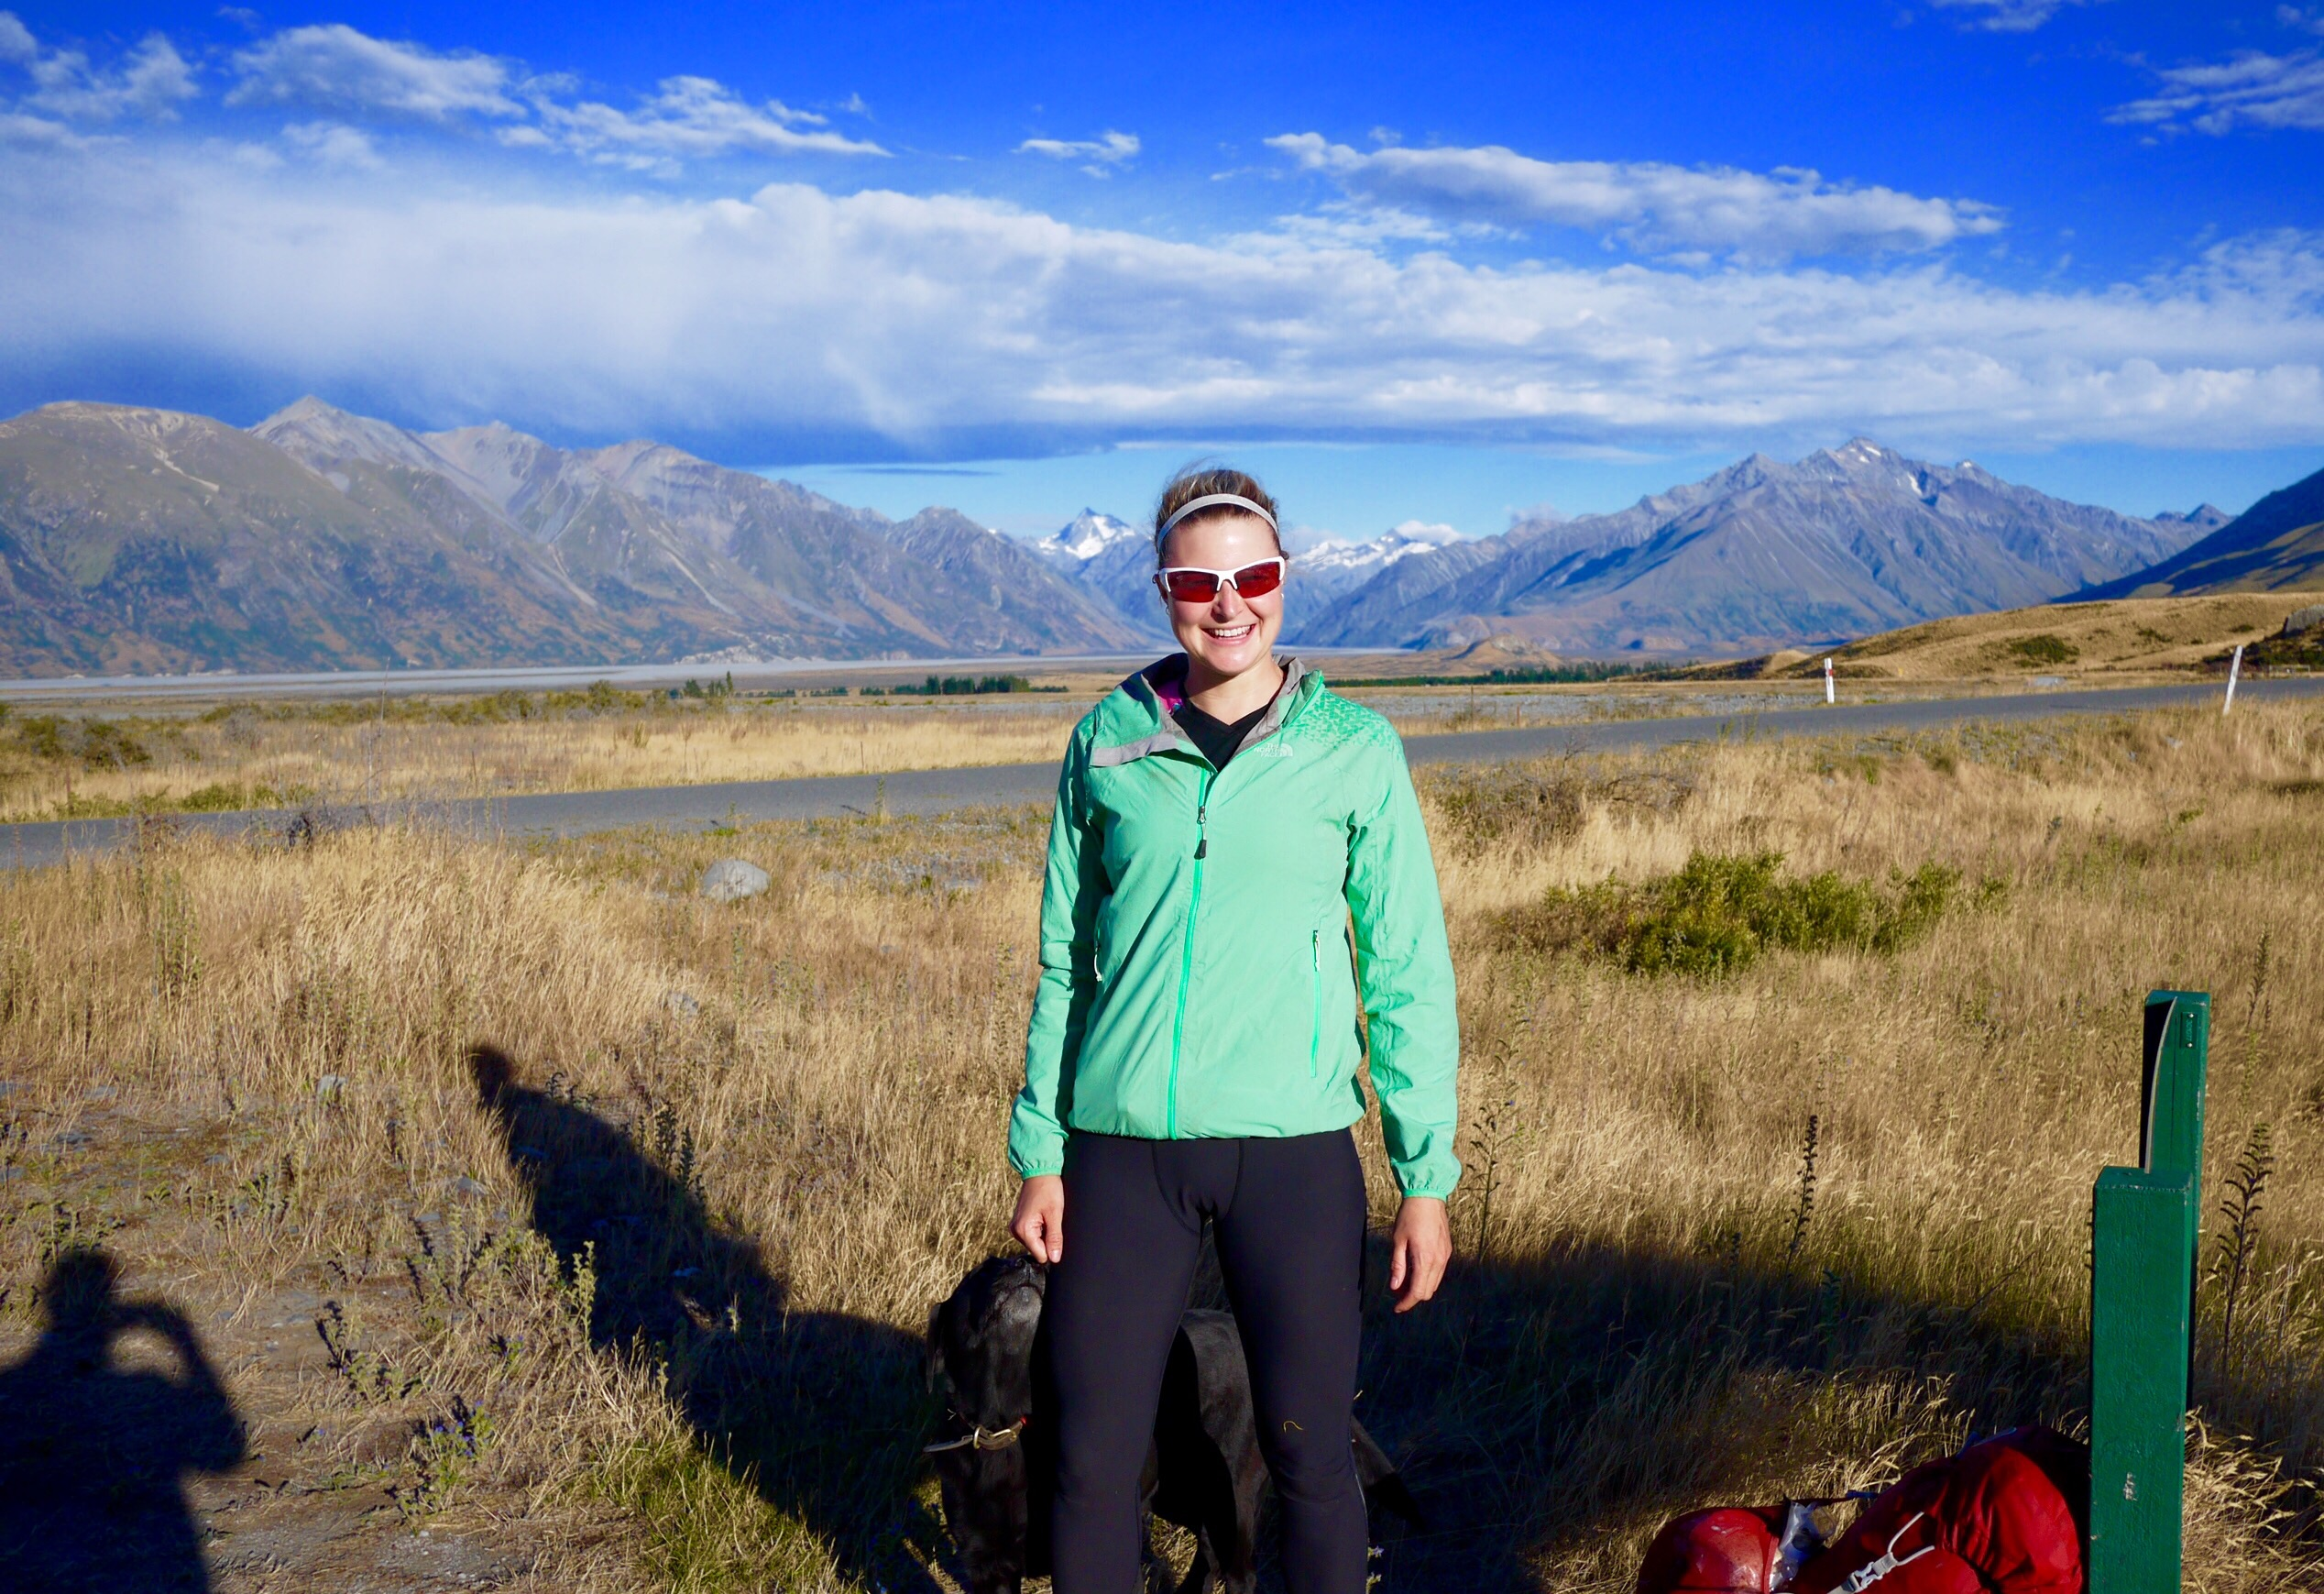 Setting off from the North side of the Rangitata river